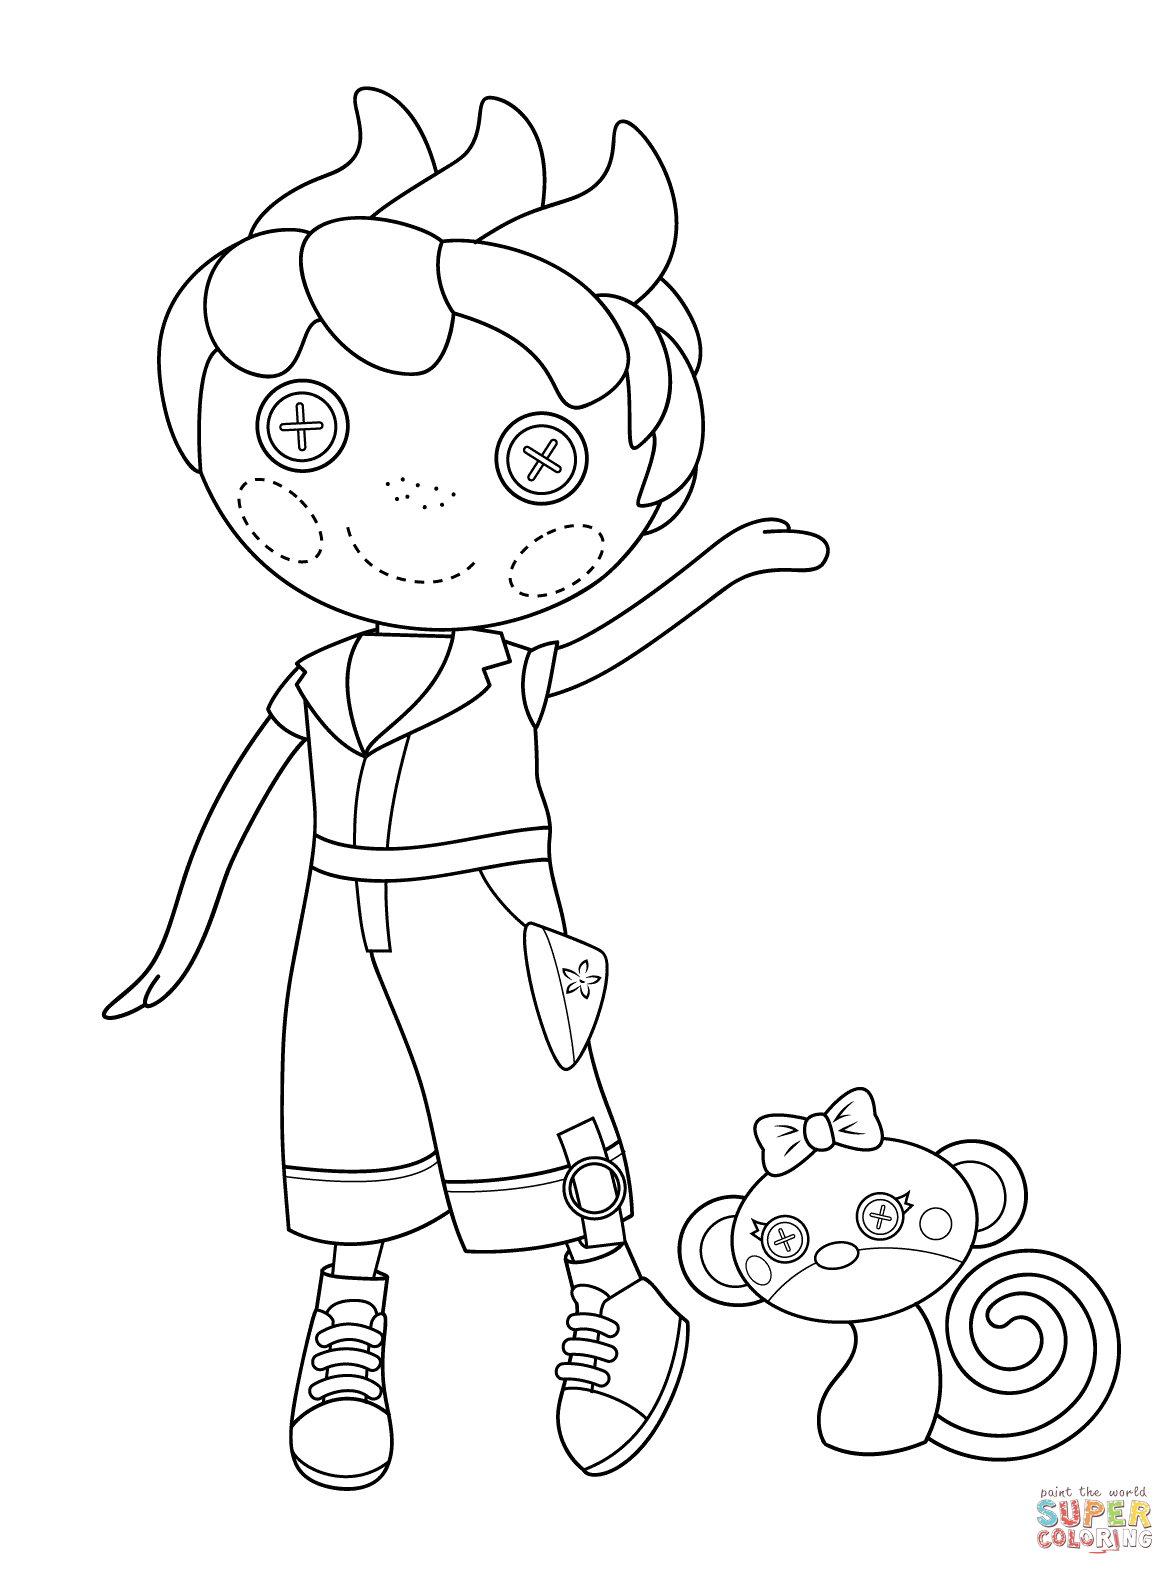 Lalaloopsy Coloring Book Games Disney Coloring Pages Mermaid Coloring Pages Hello Kitty Colouring Pages